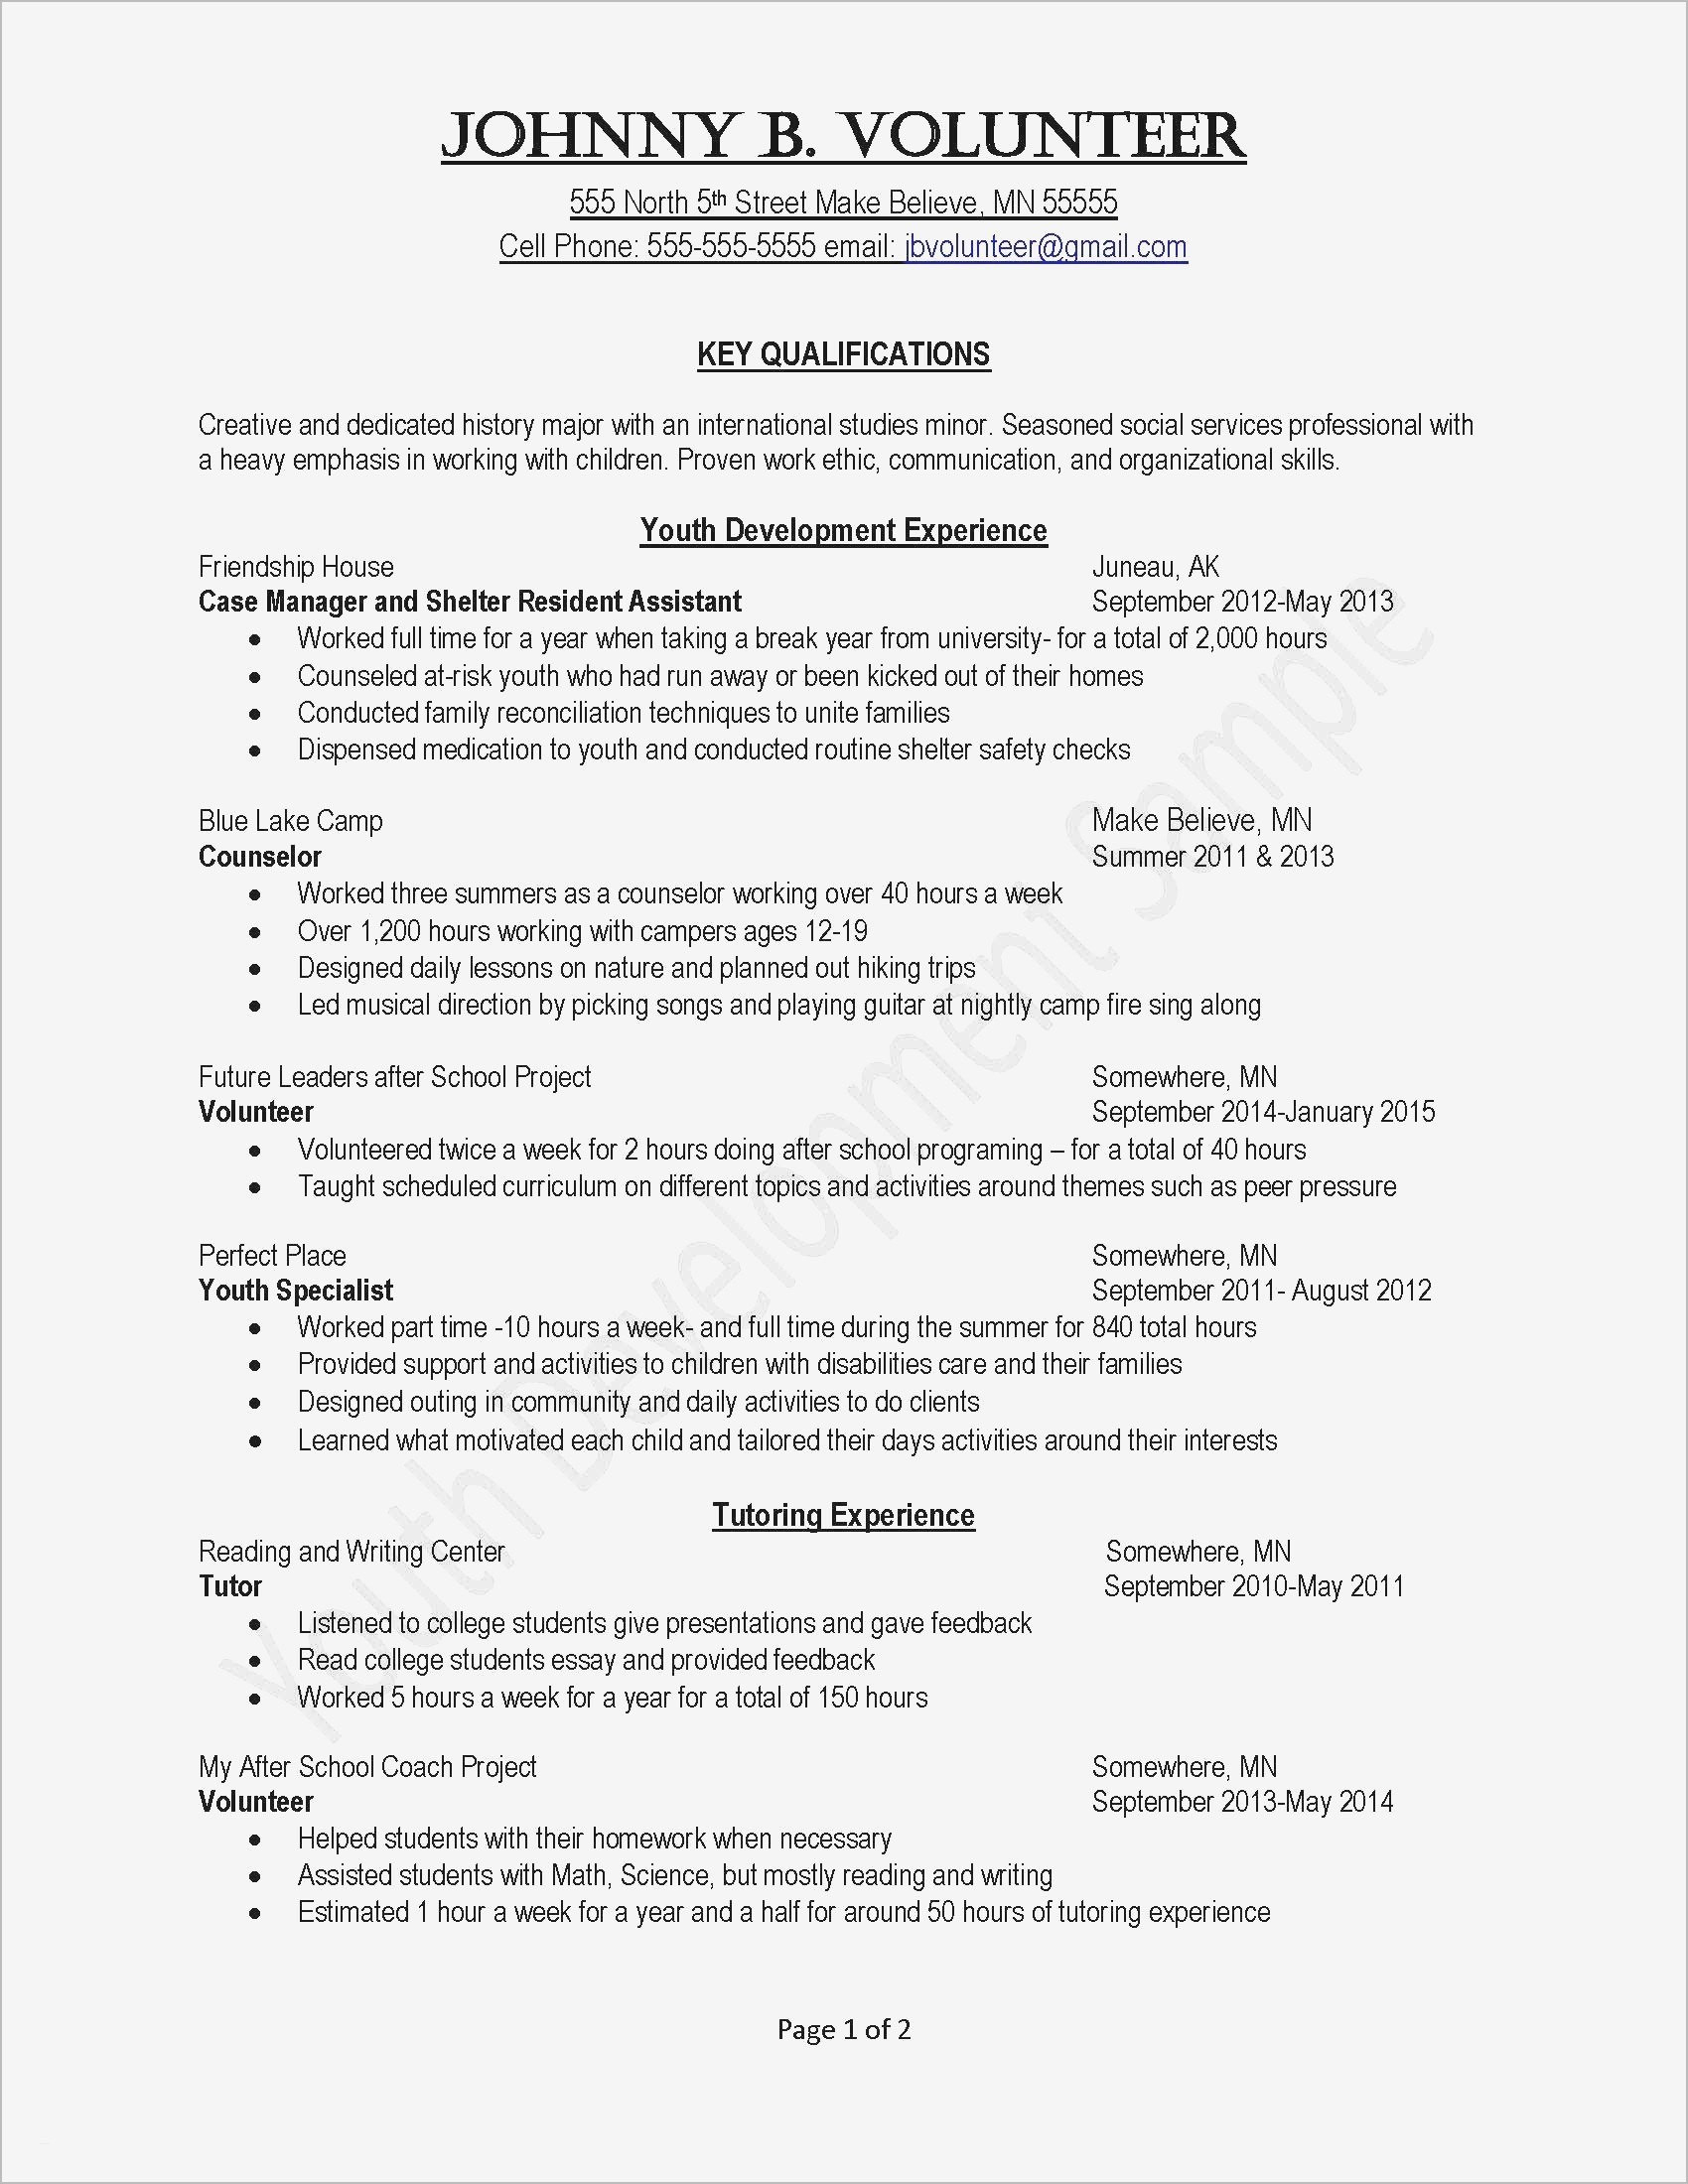 Cover Letter Template for Teaching assistant - Ficial Resume Template Beautiful Job Fer Letter Template Us Copy